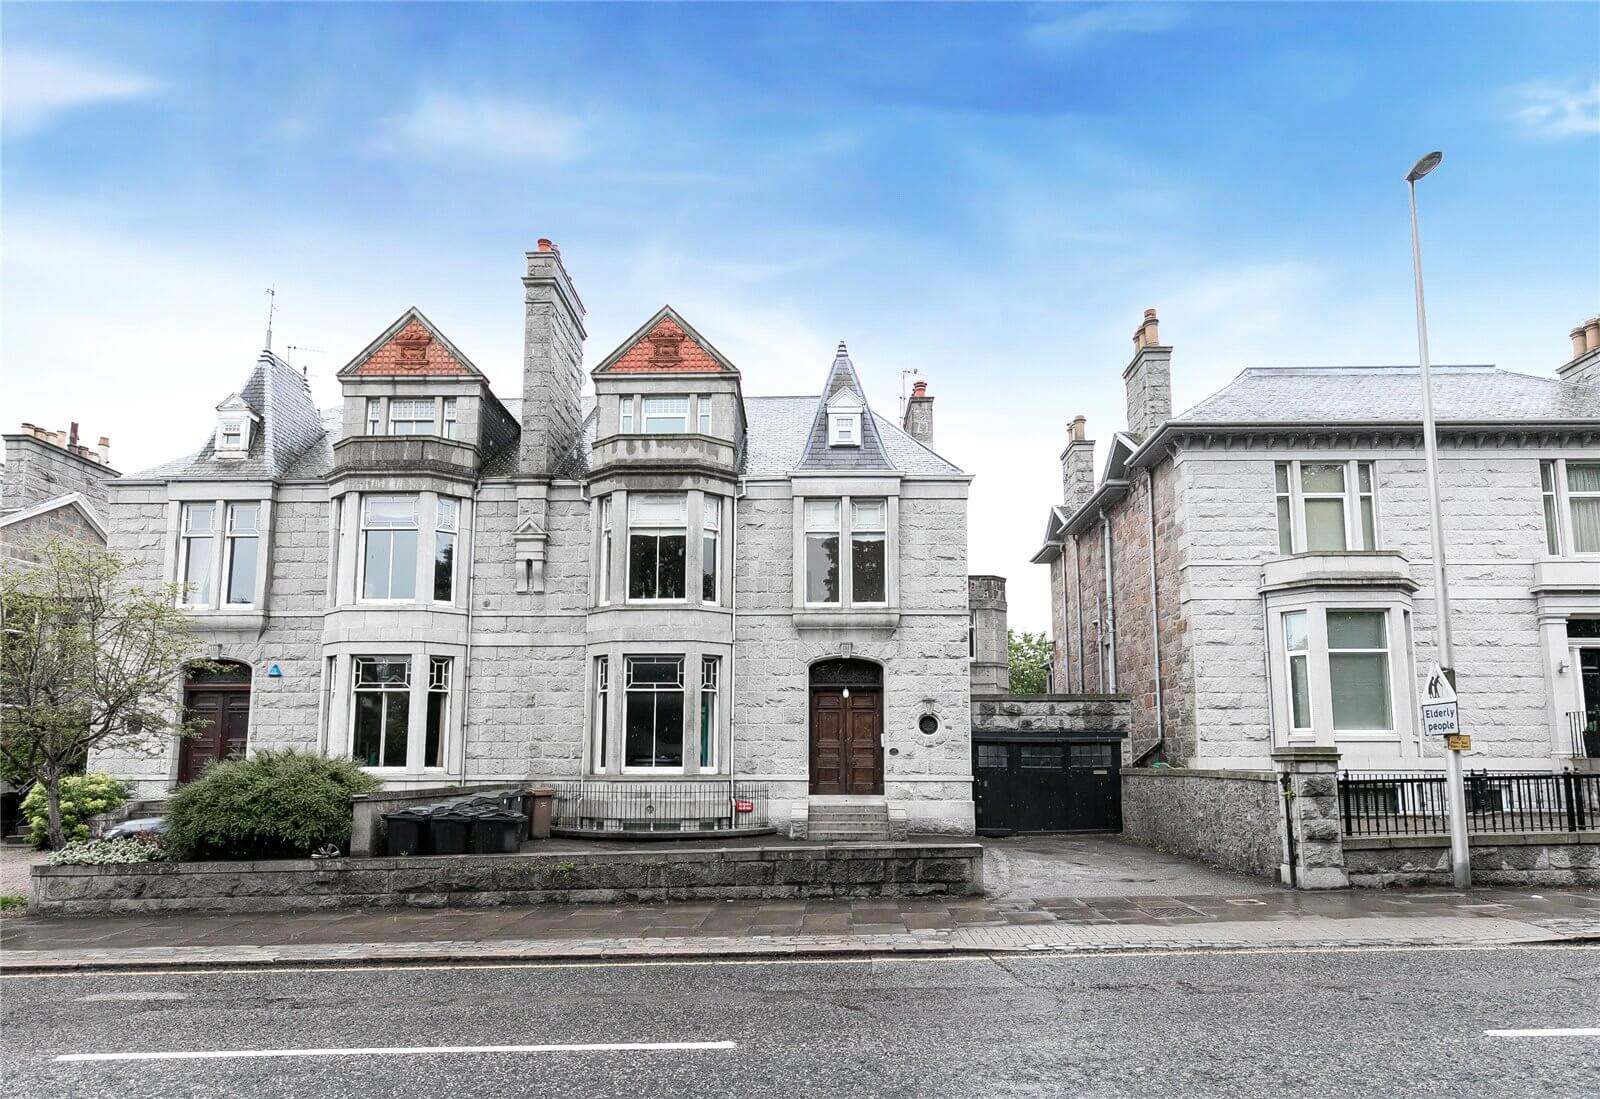 Our latest properties for sale and to let (17th July 2019)